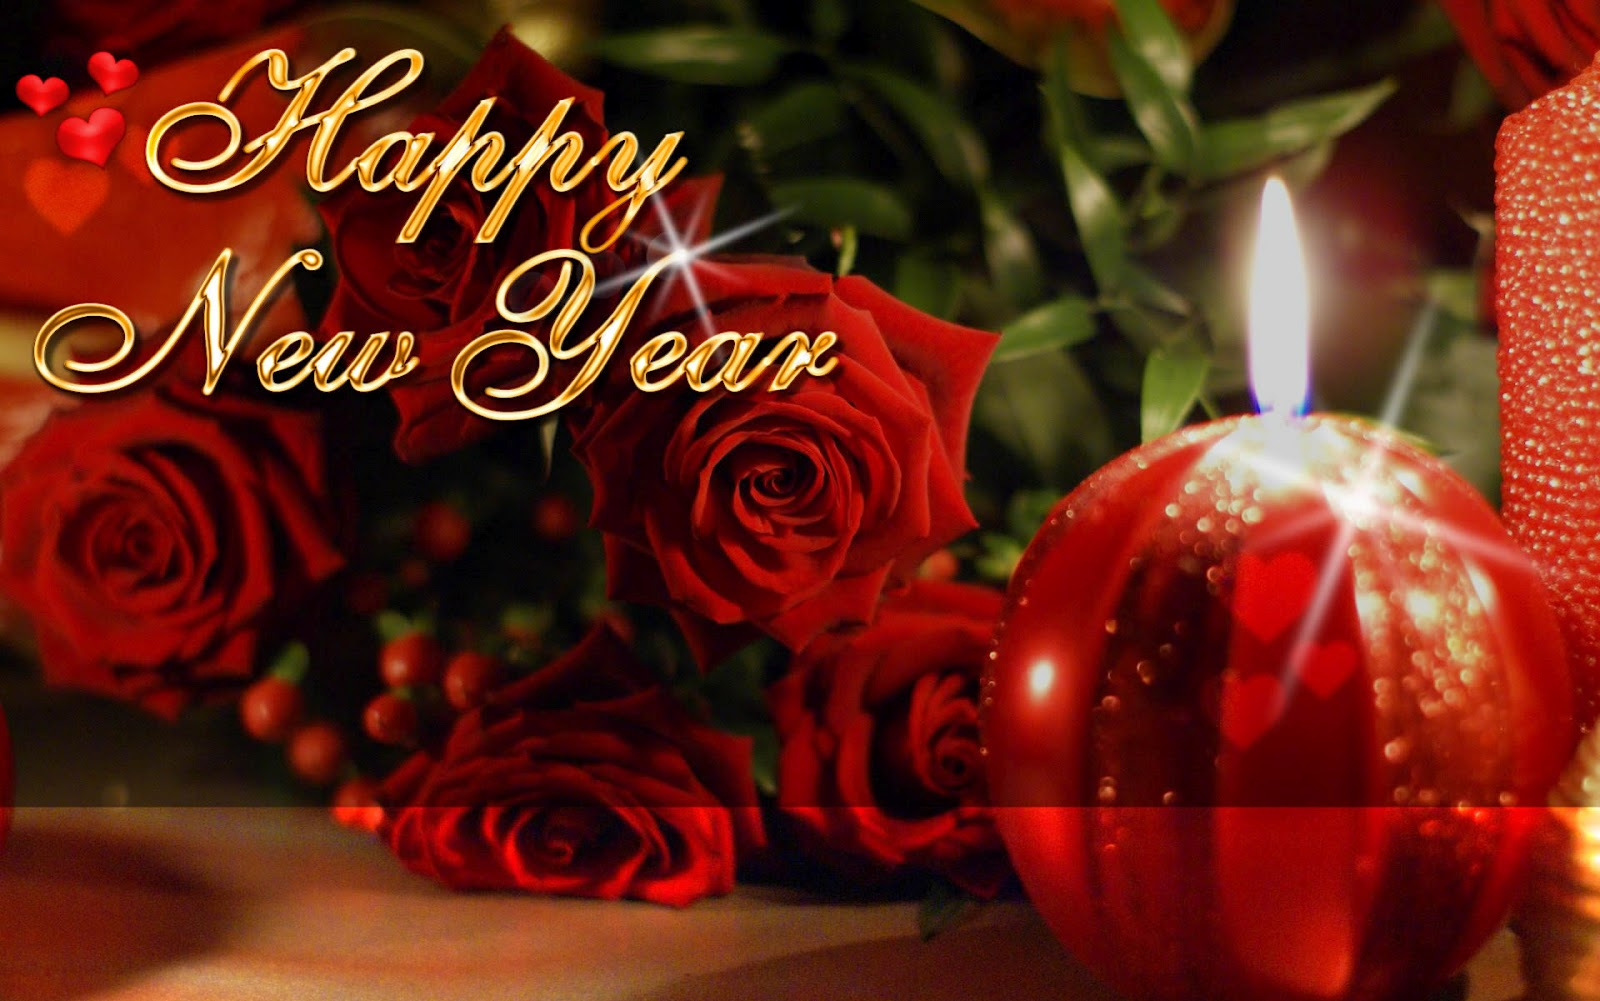 Happy New Year.10 God Bless Happy New Year Graphics Comments 2014